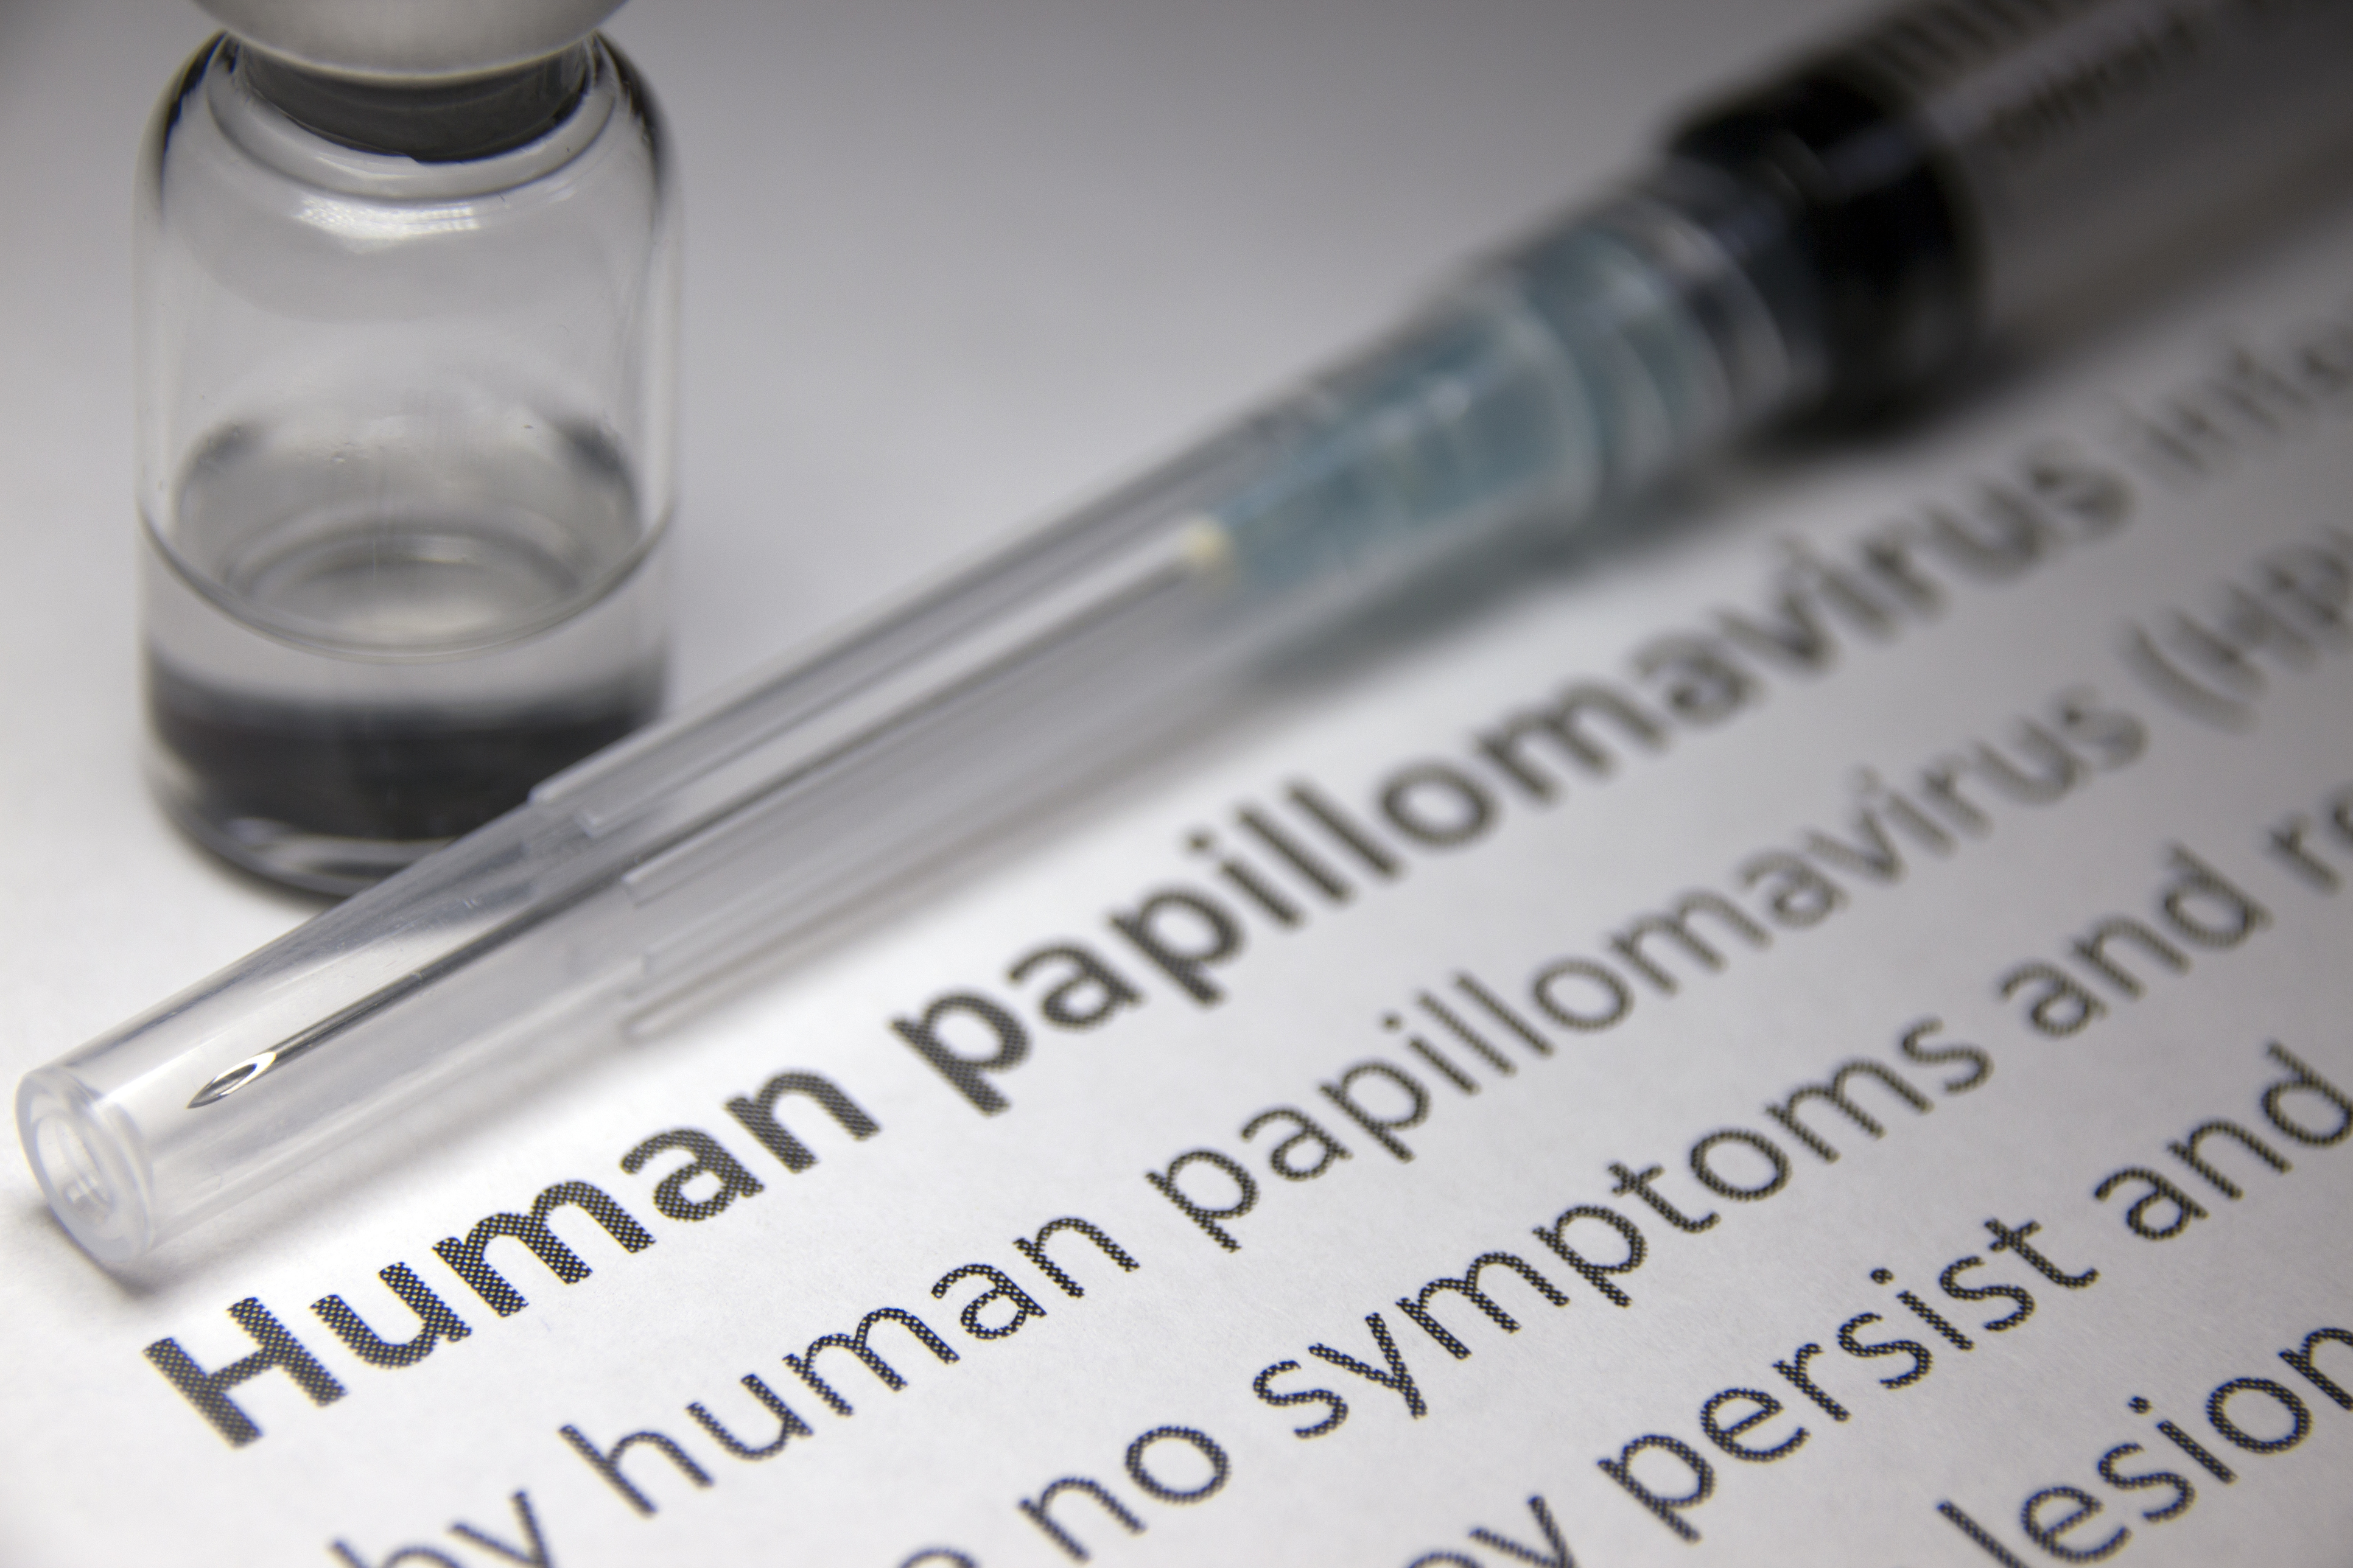 Public consultation: HPV vaccination recommendations